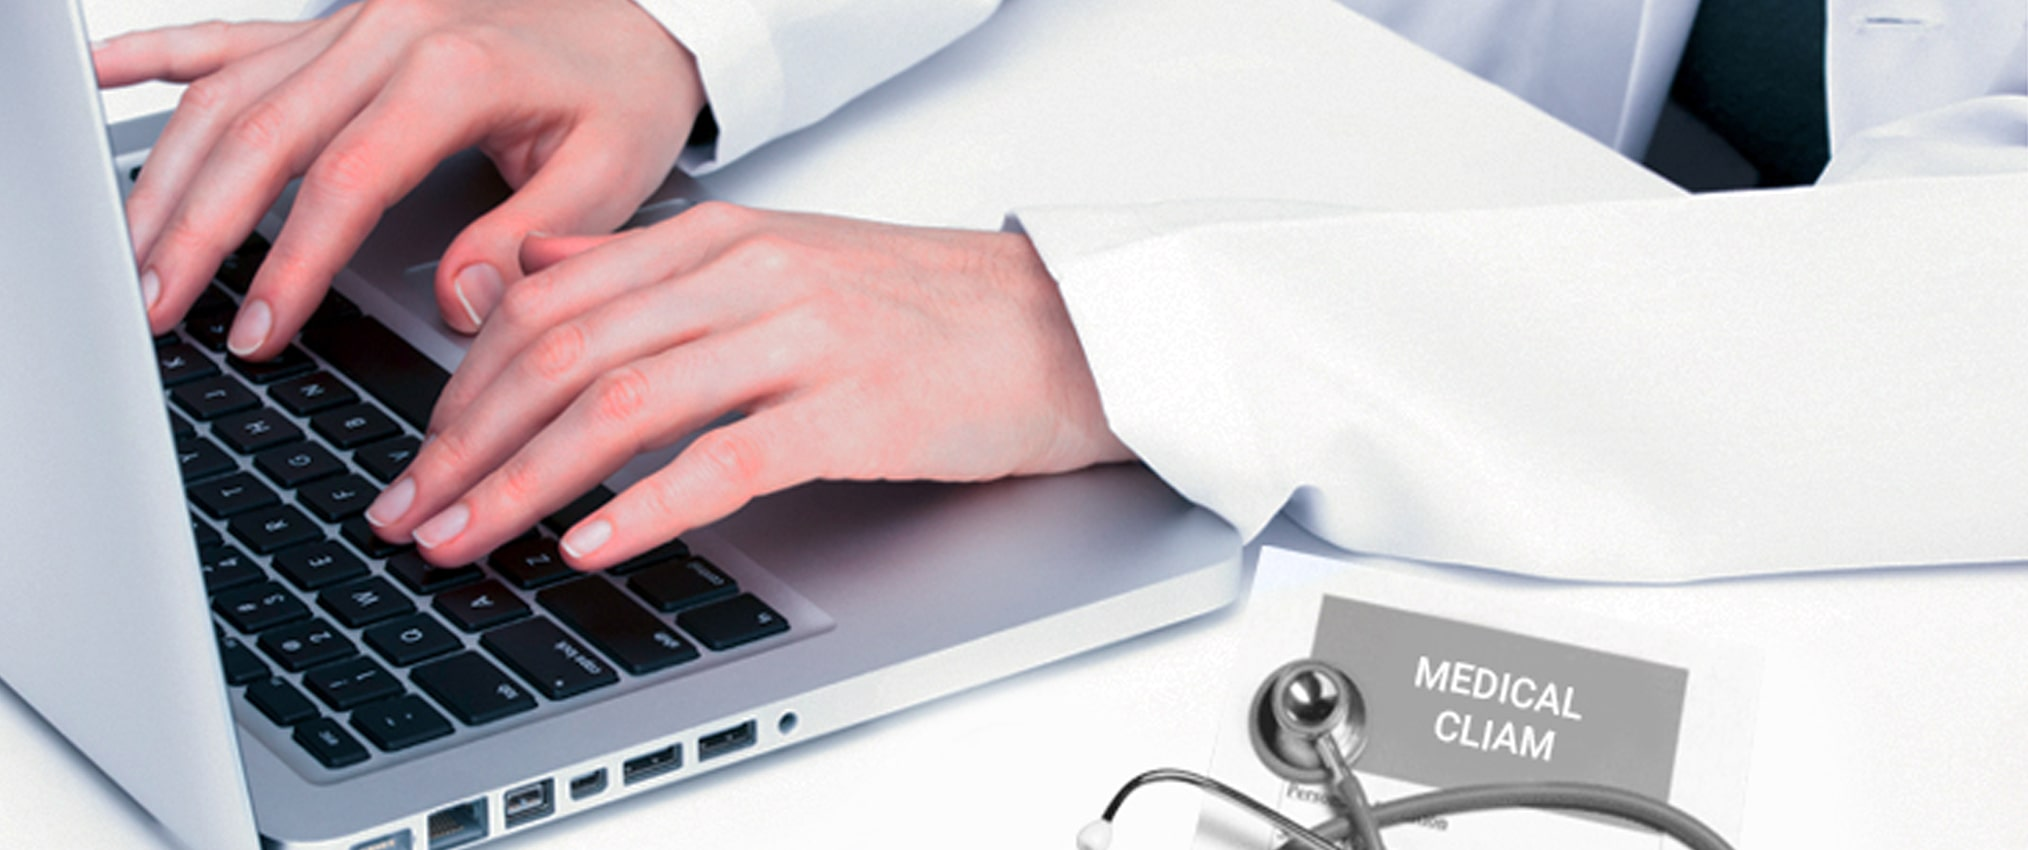 medical claim processing services